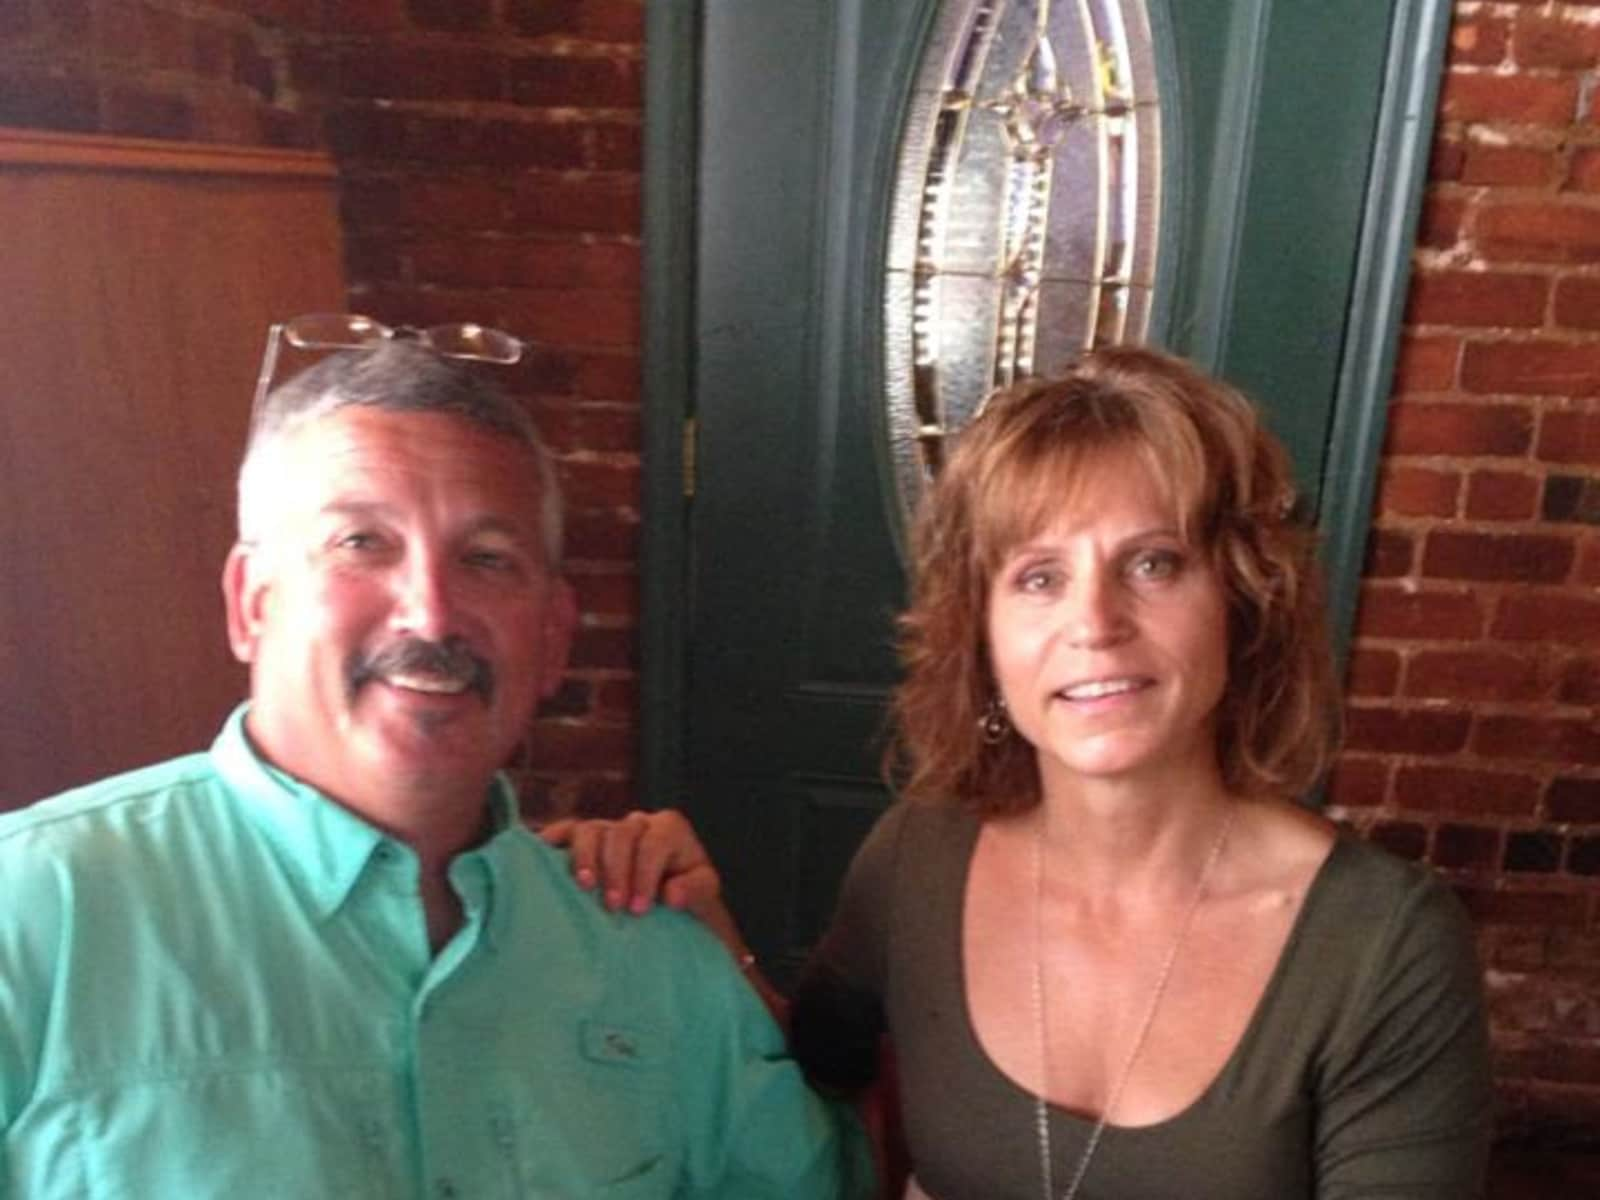 Theresa & Mike from Manassas, Virginia, United States